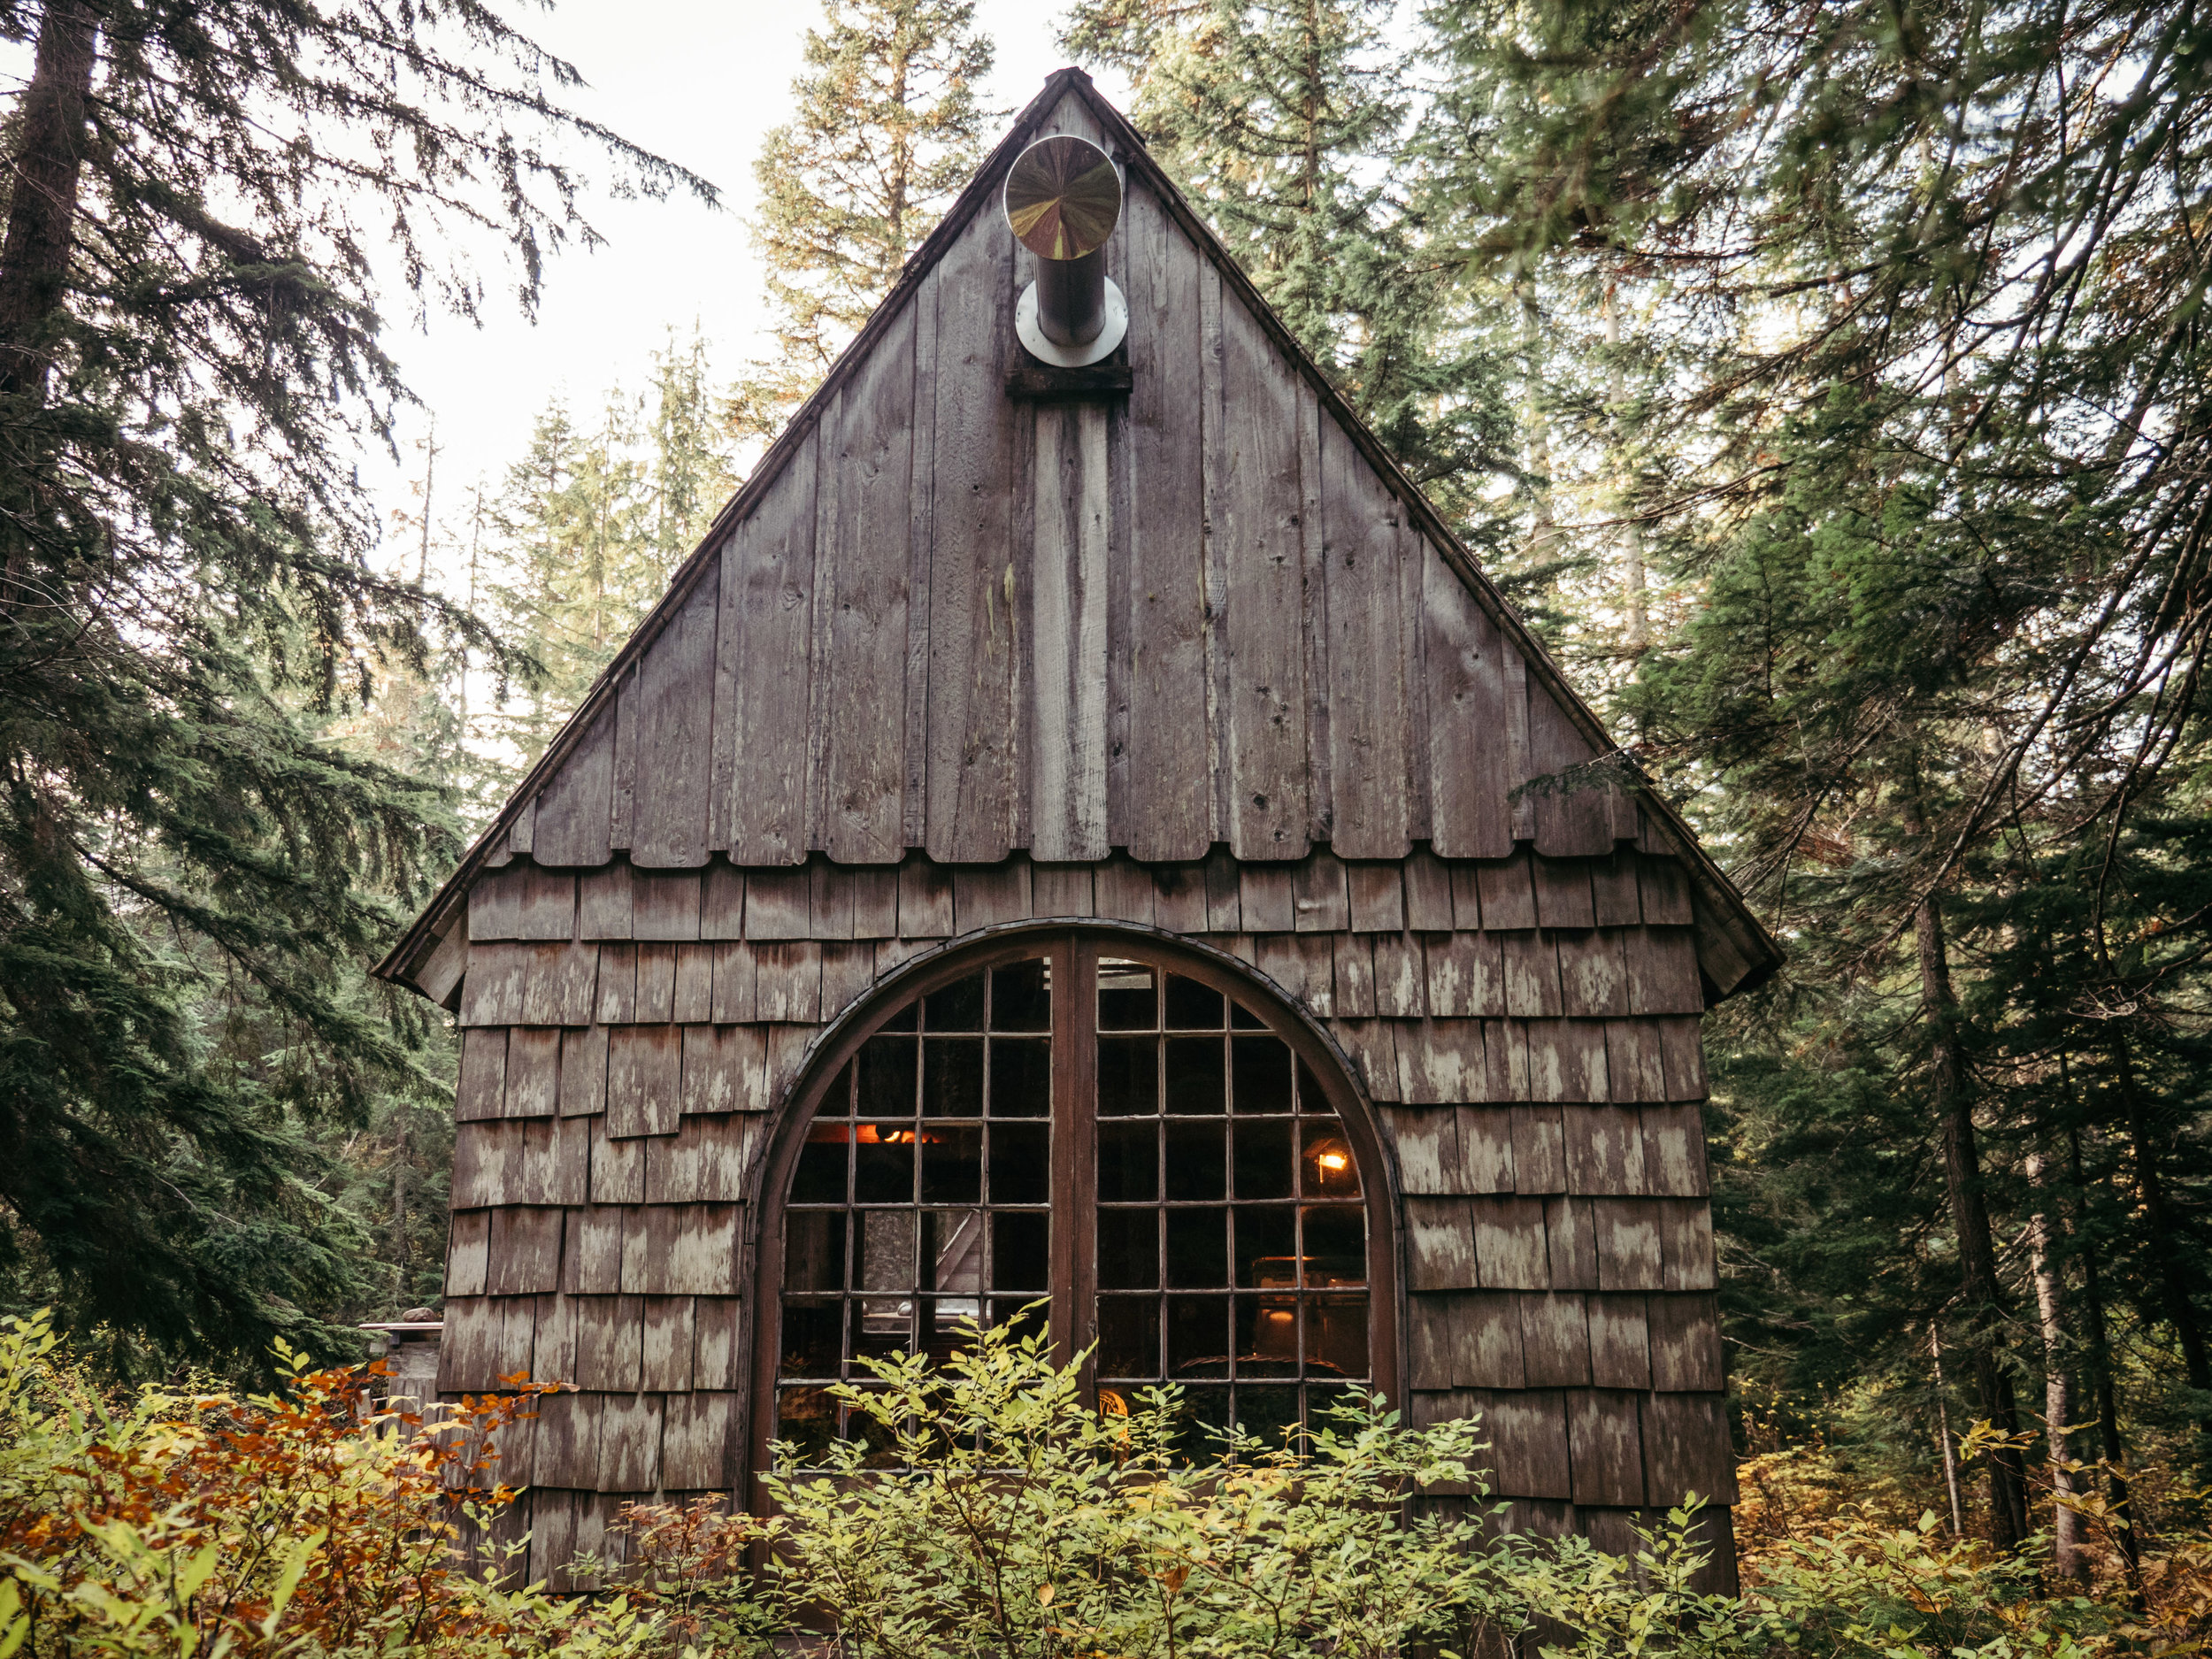 Alpental River Cabin - Make your stay historic. Coming soon.